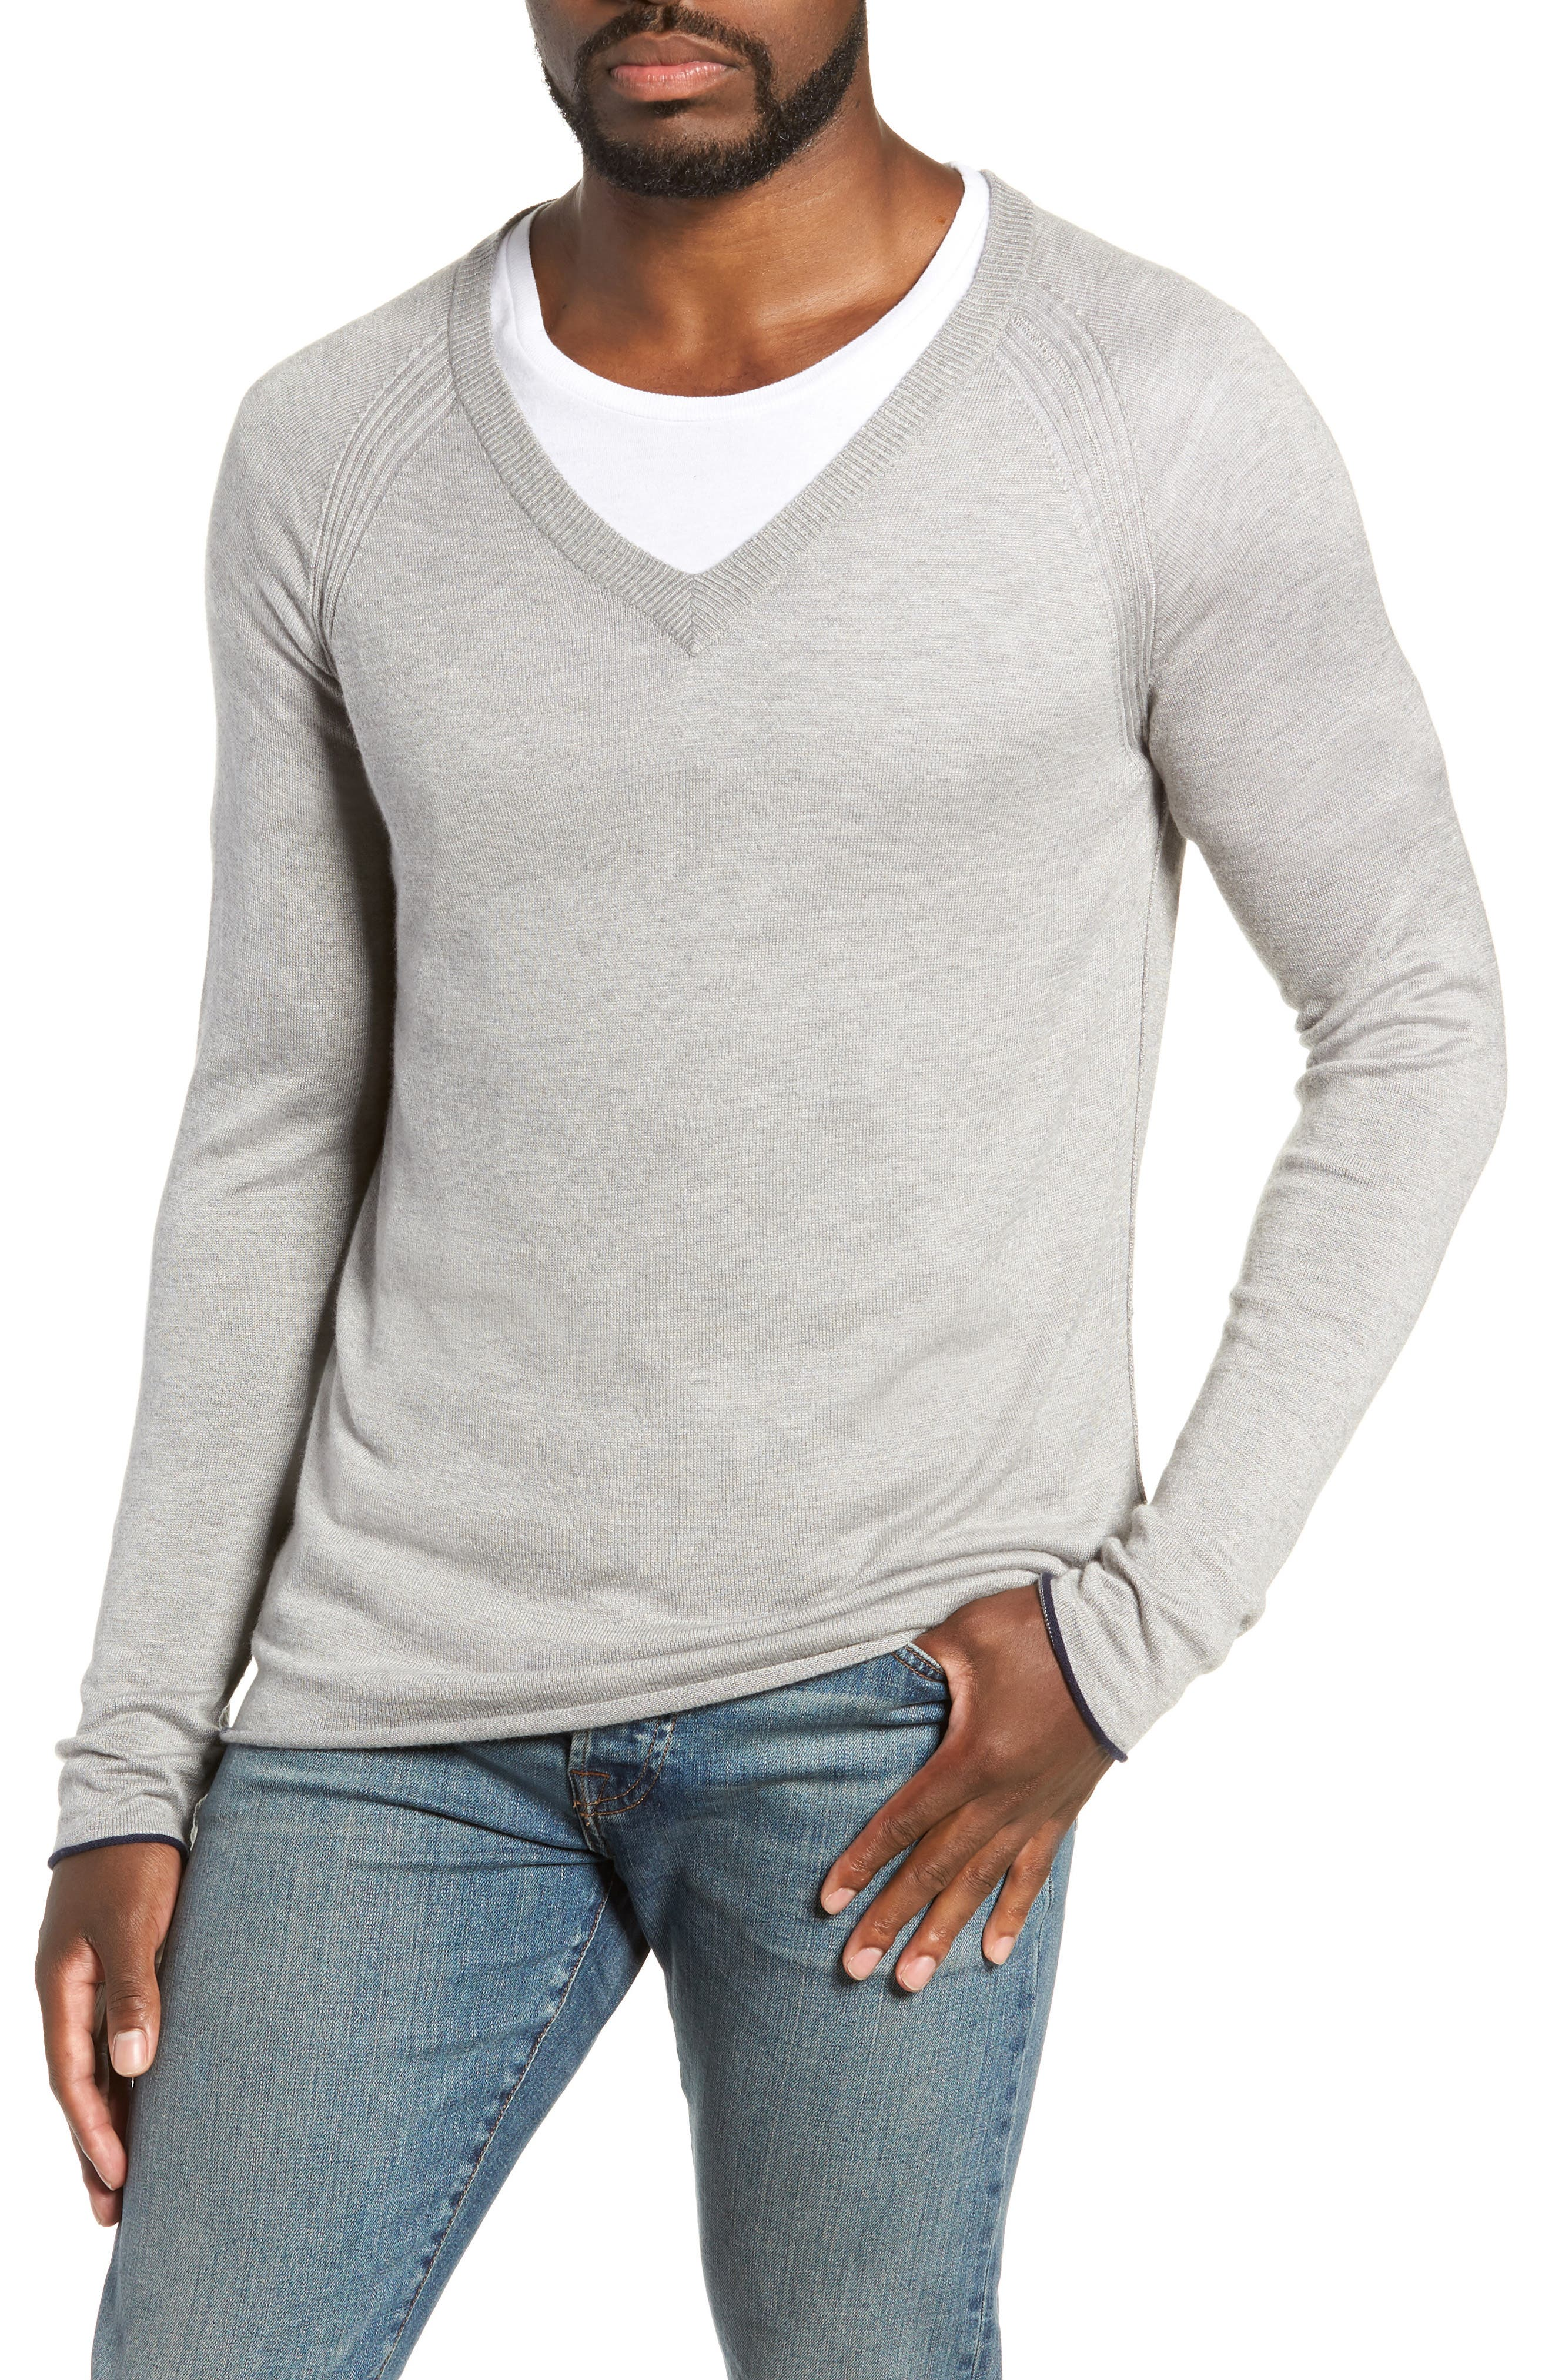 Salinas Cash V-Neck Sweater,                             Main thumbnail 1, color,                             GREY HEATHER